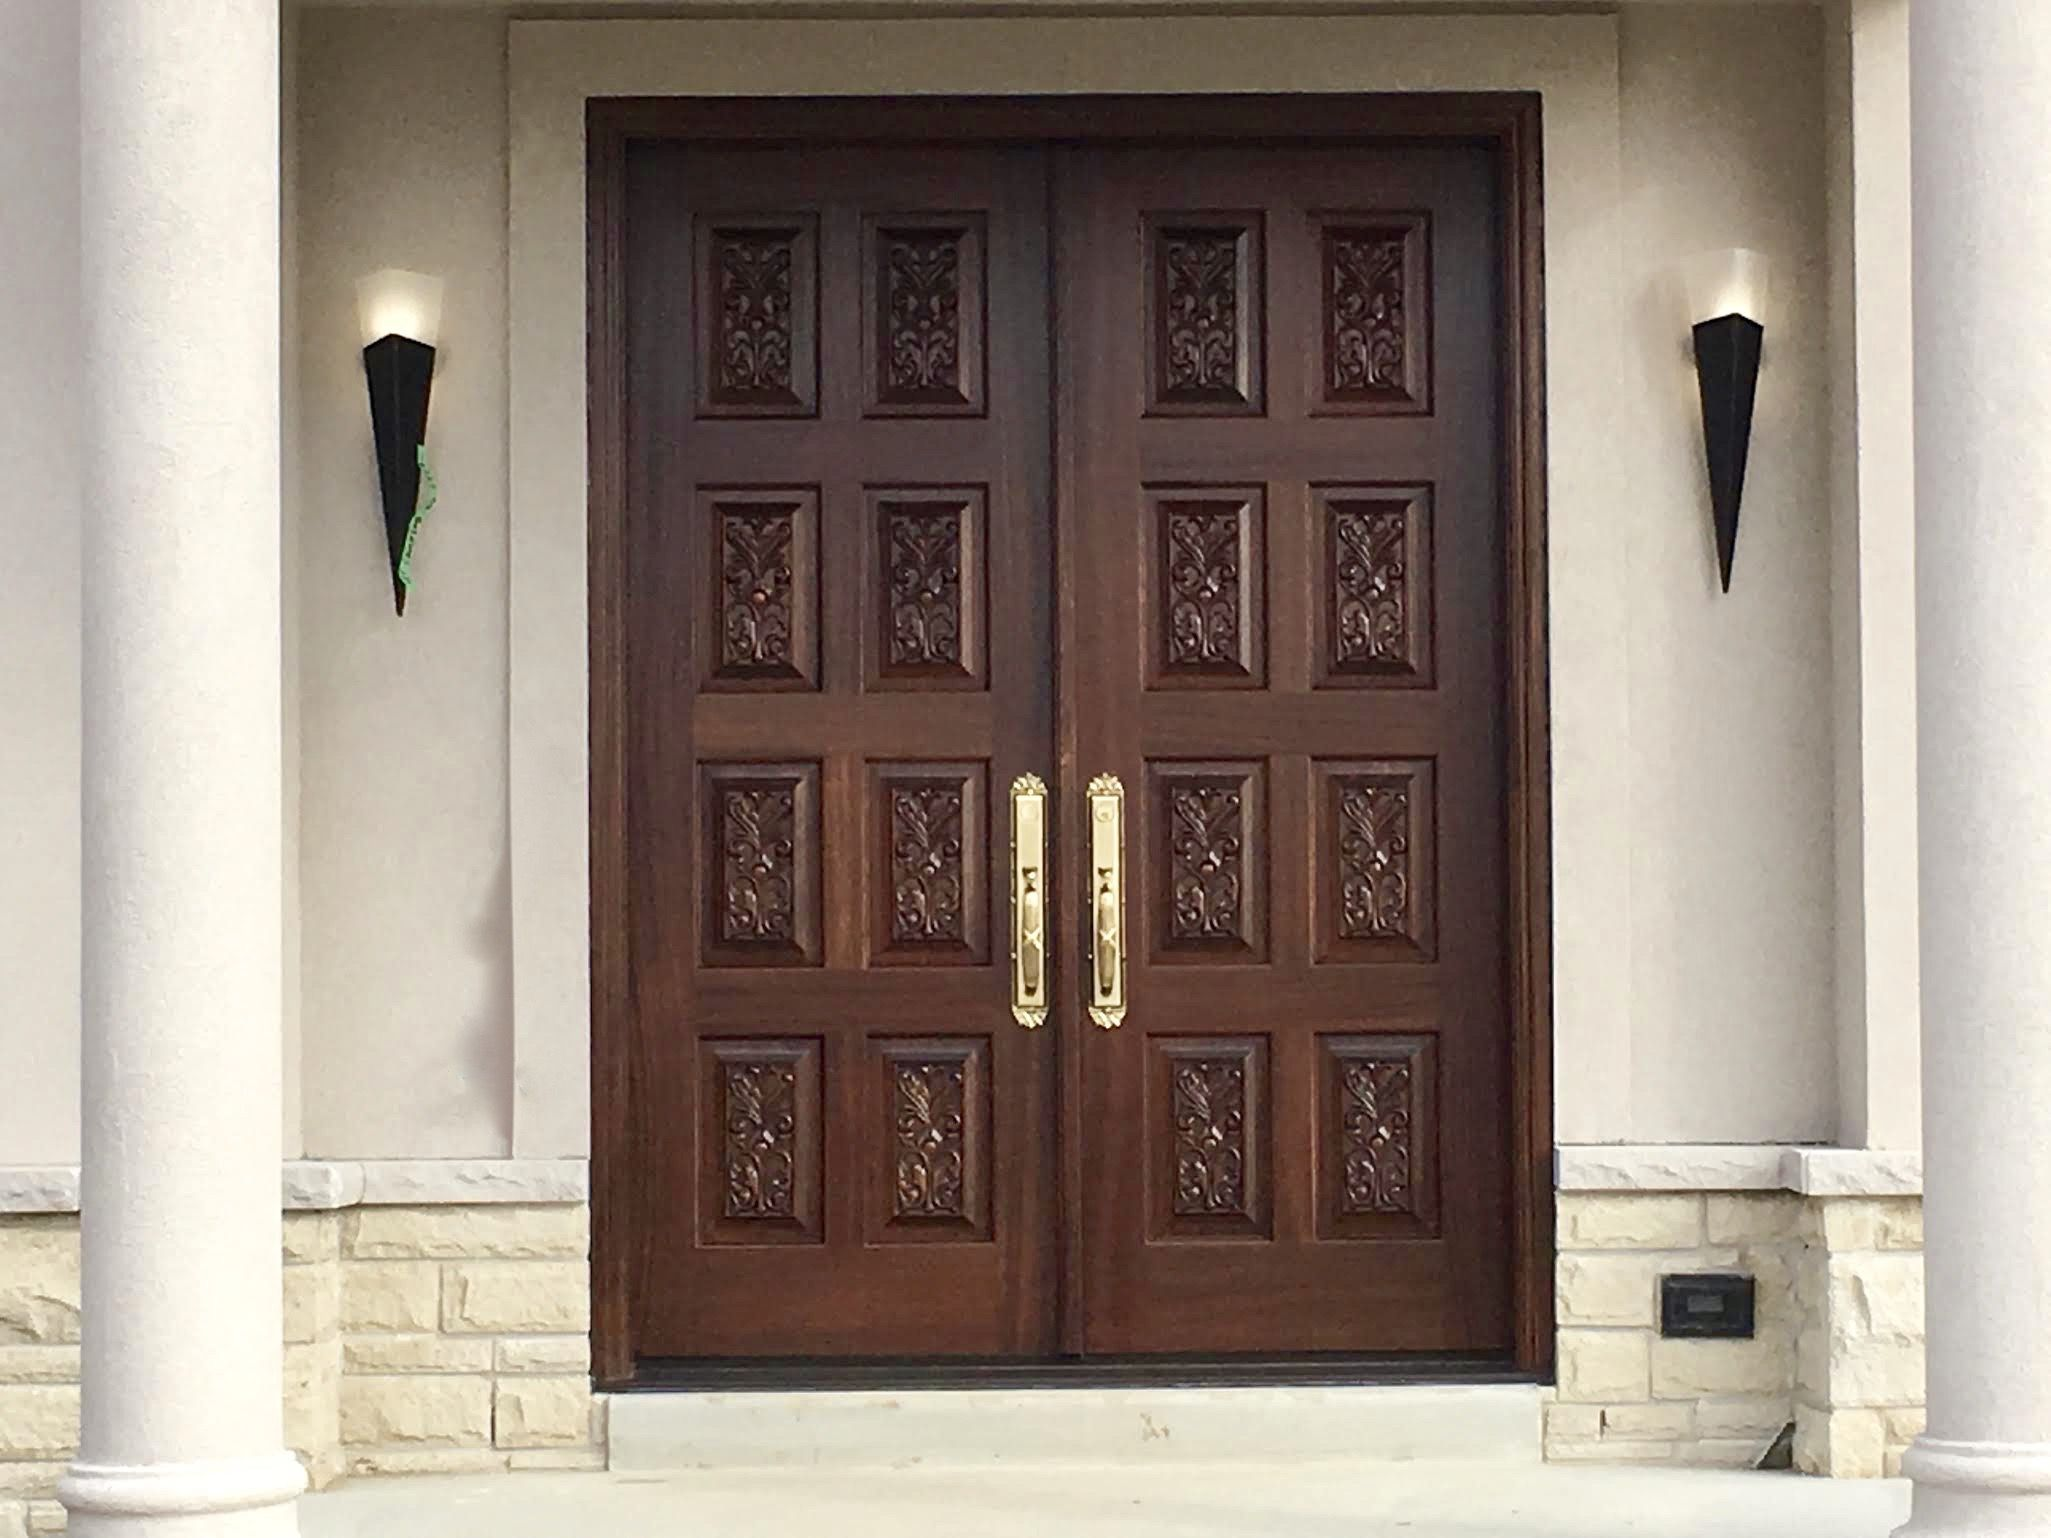 Amberwood Doors Inc: *NEW CONSTRUCTION* Features Gorgeous #custommade #solid